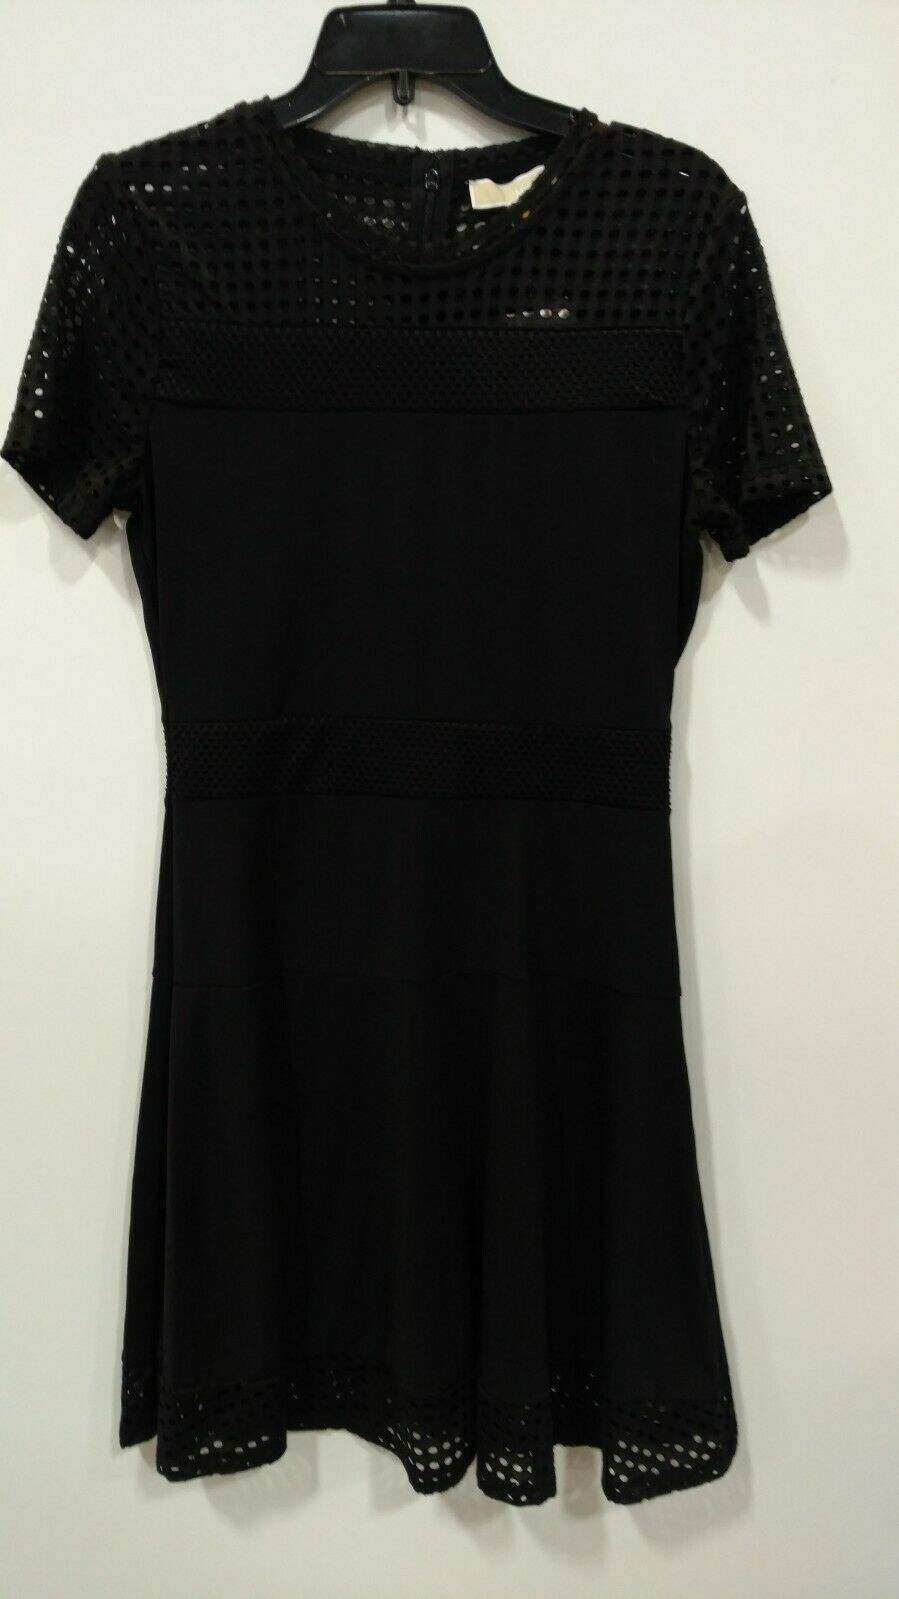 Primary image for New $235 Michael Kors Women's Black Lace Mesh Fit & Flare Cocktail Dress Size M